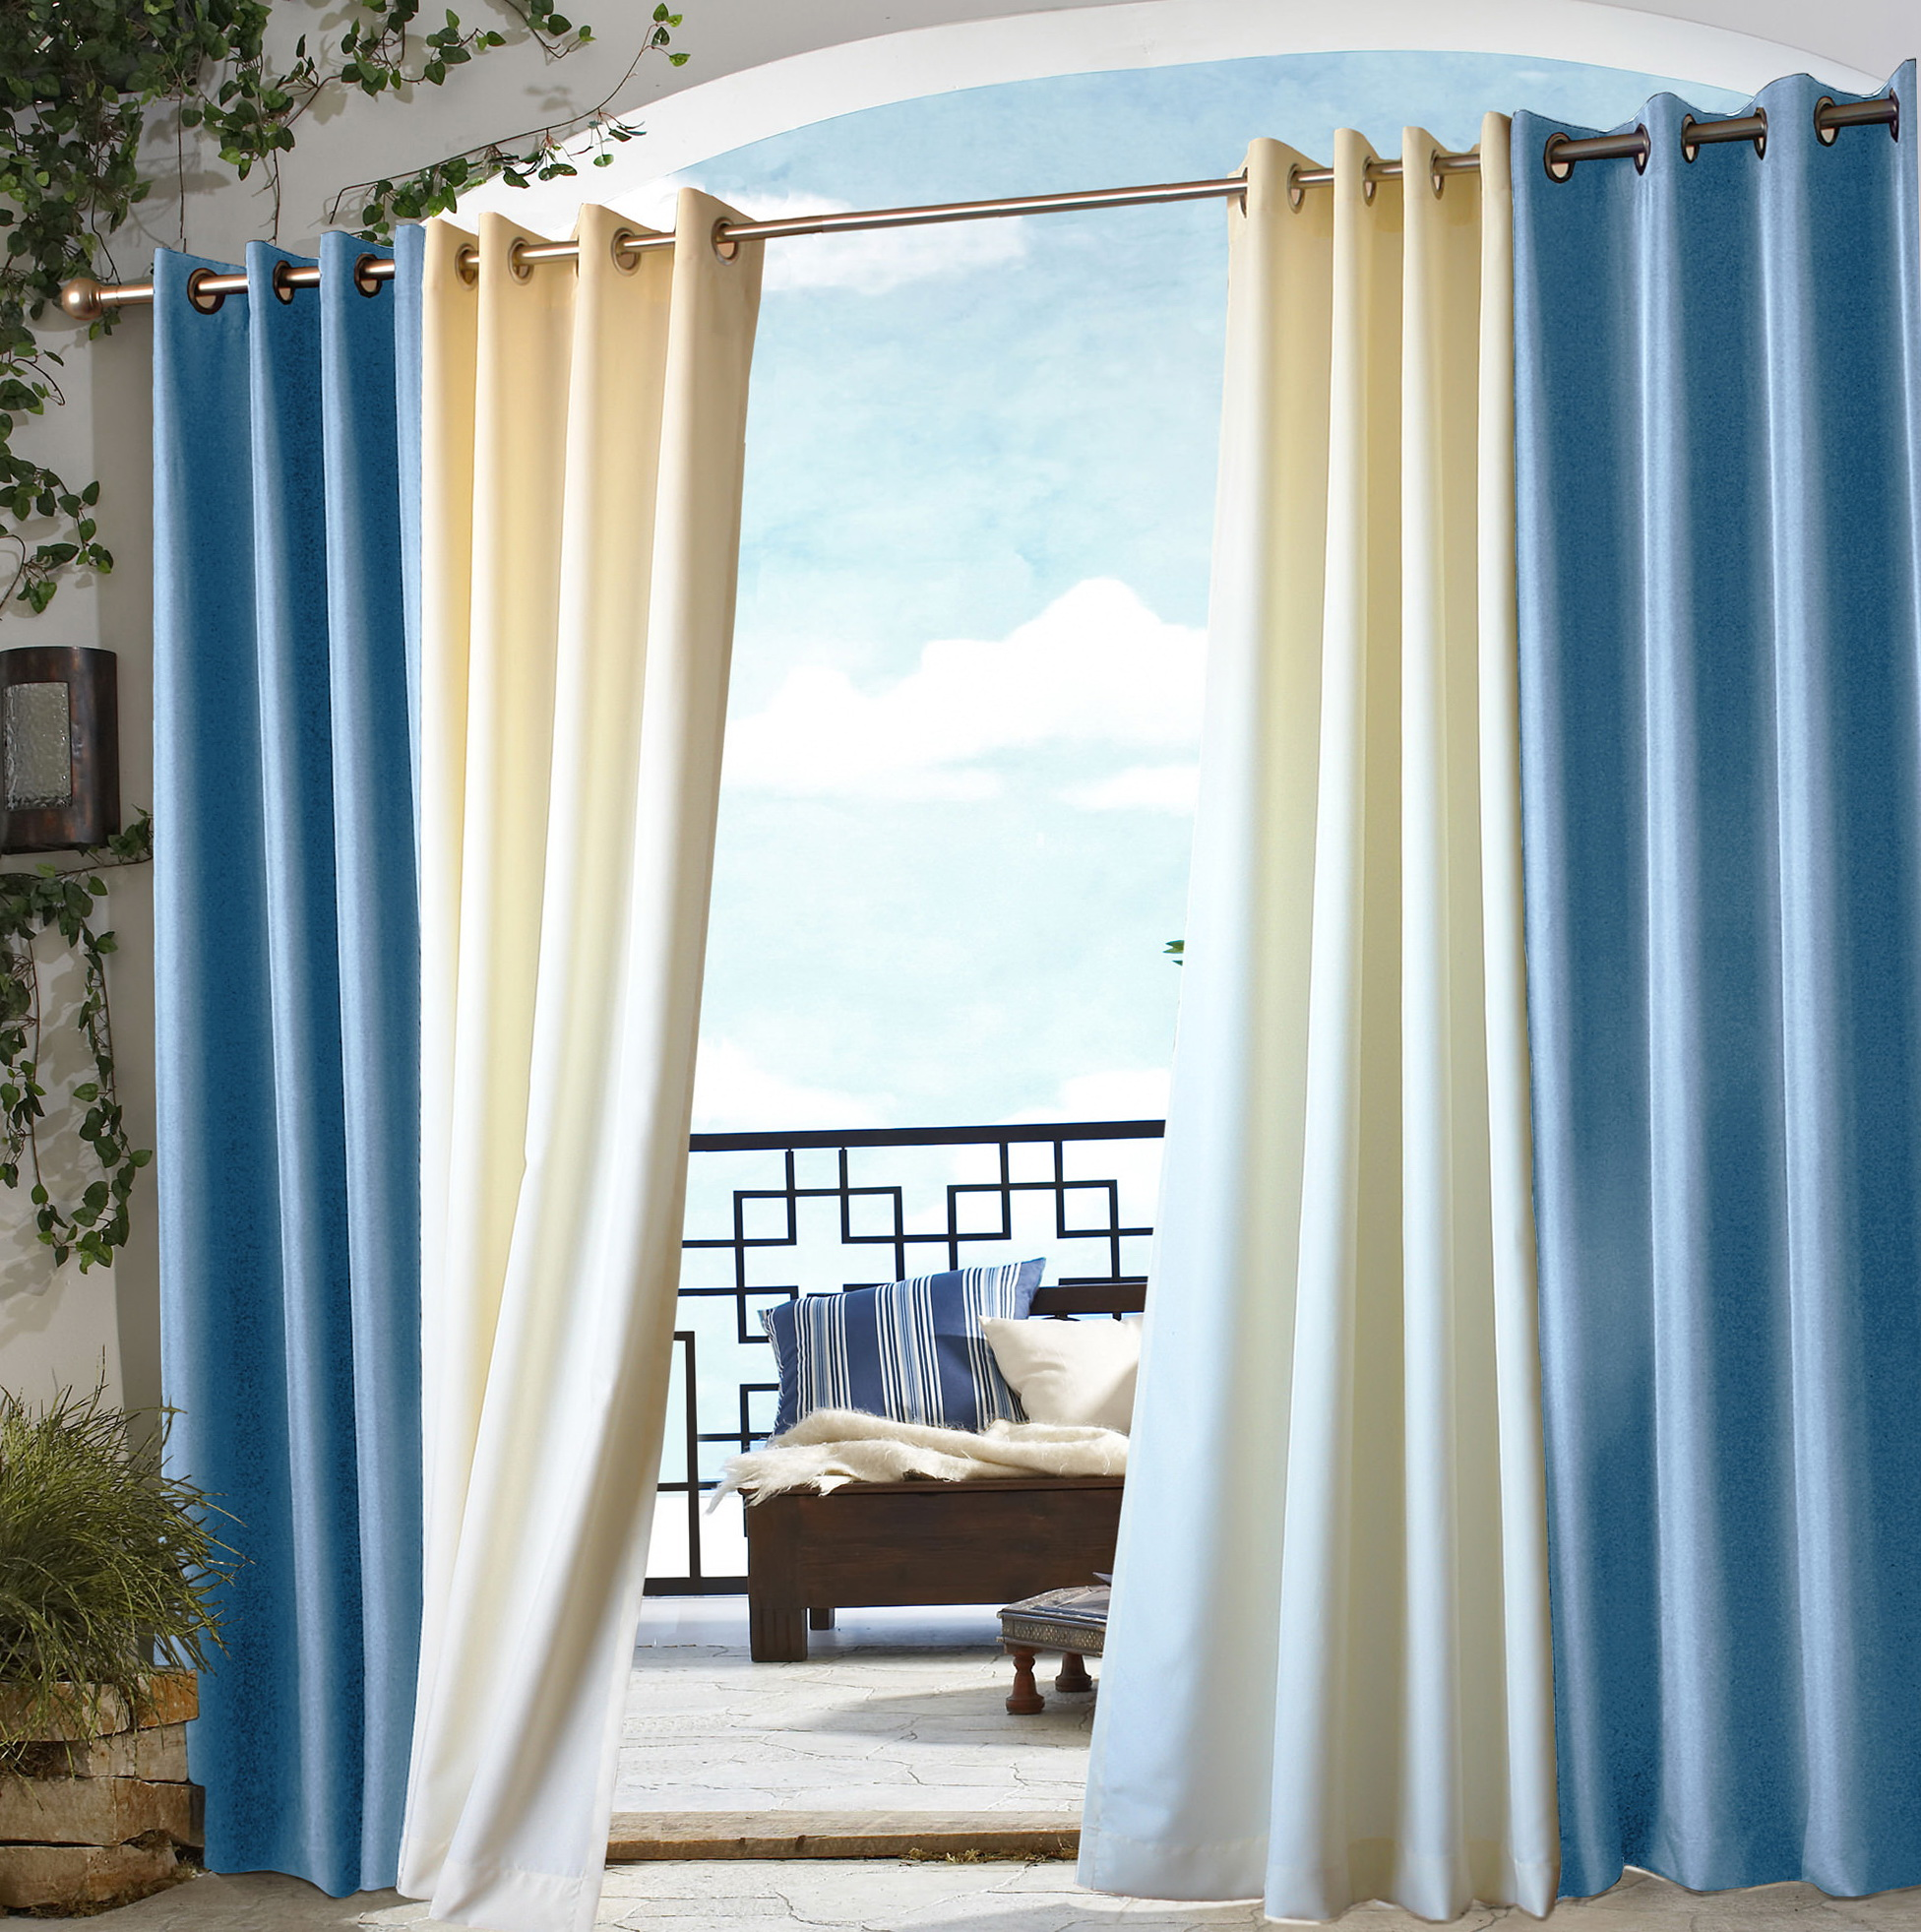 Outdoor Patio Curtains 108 Home Design Ideas